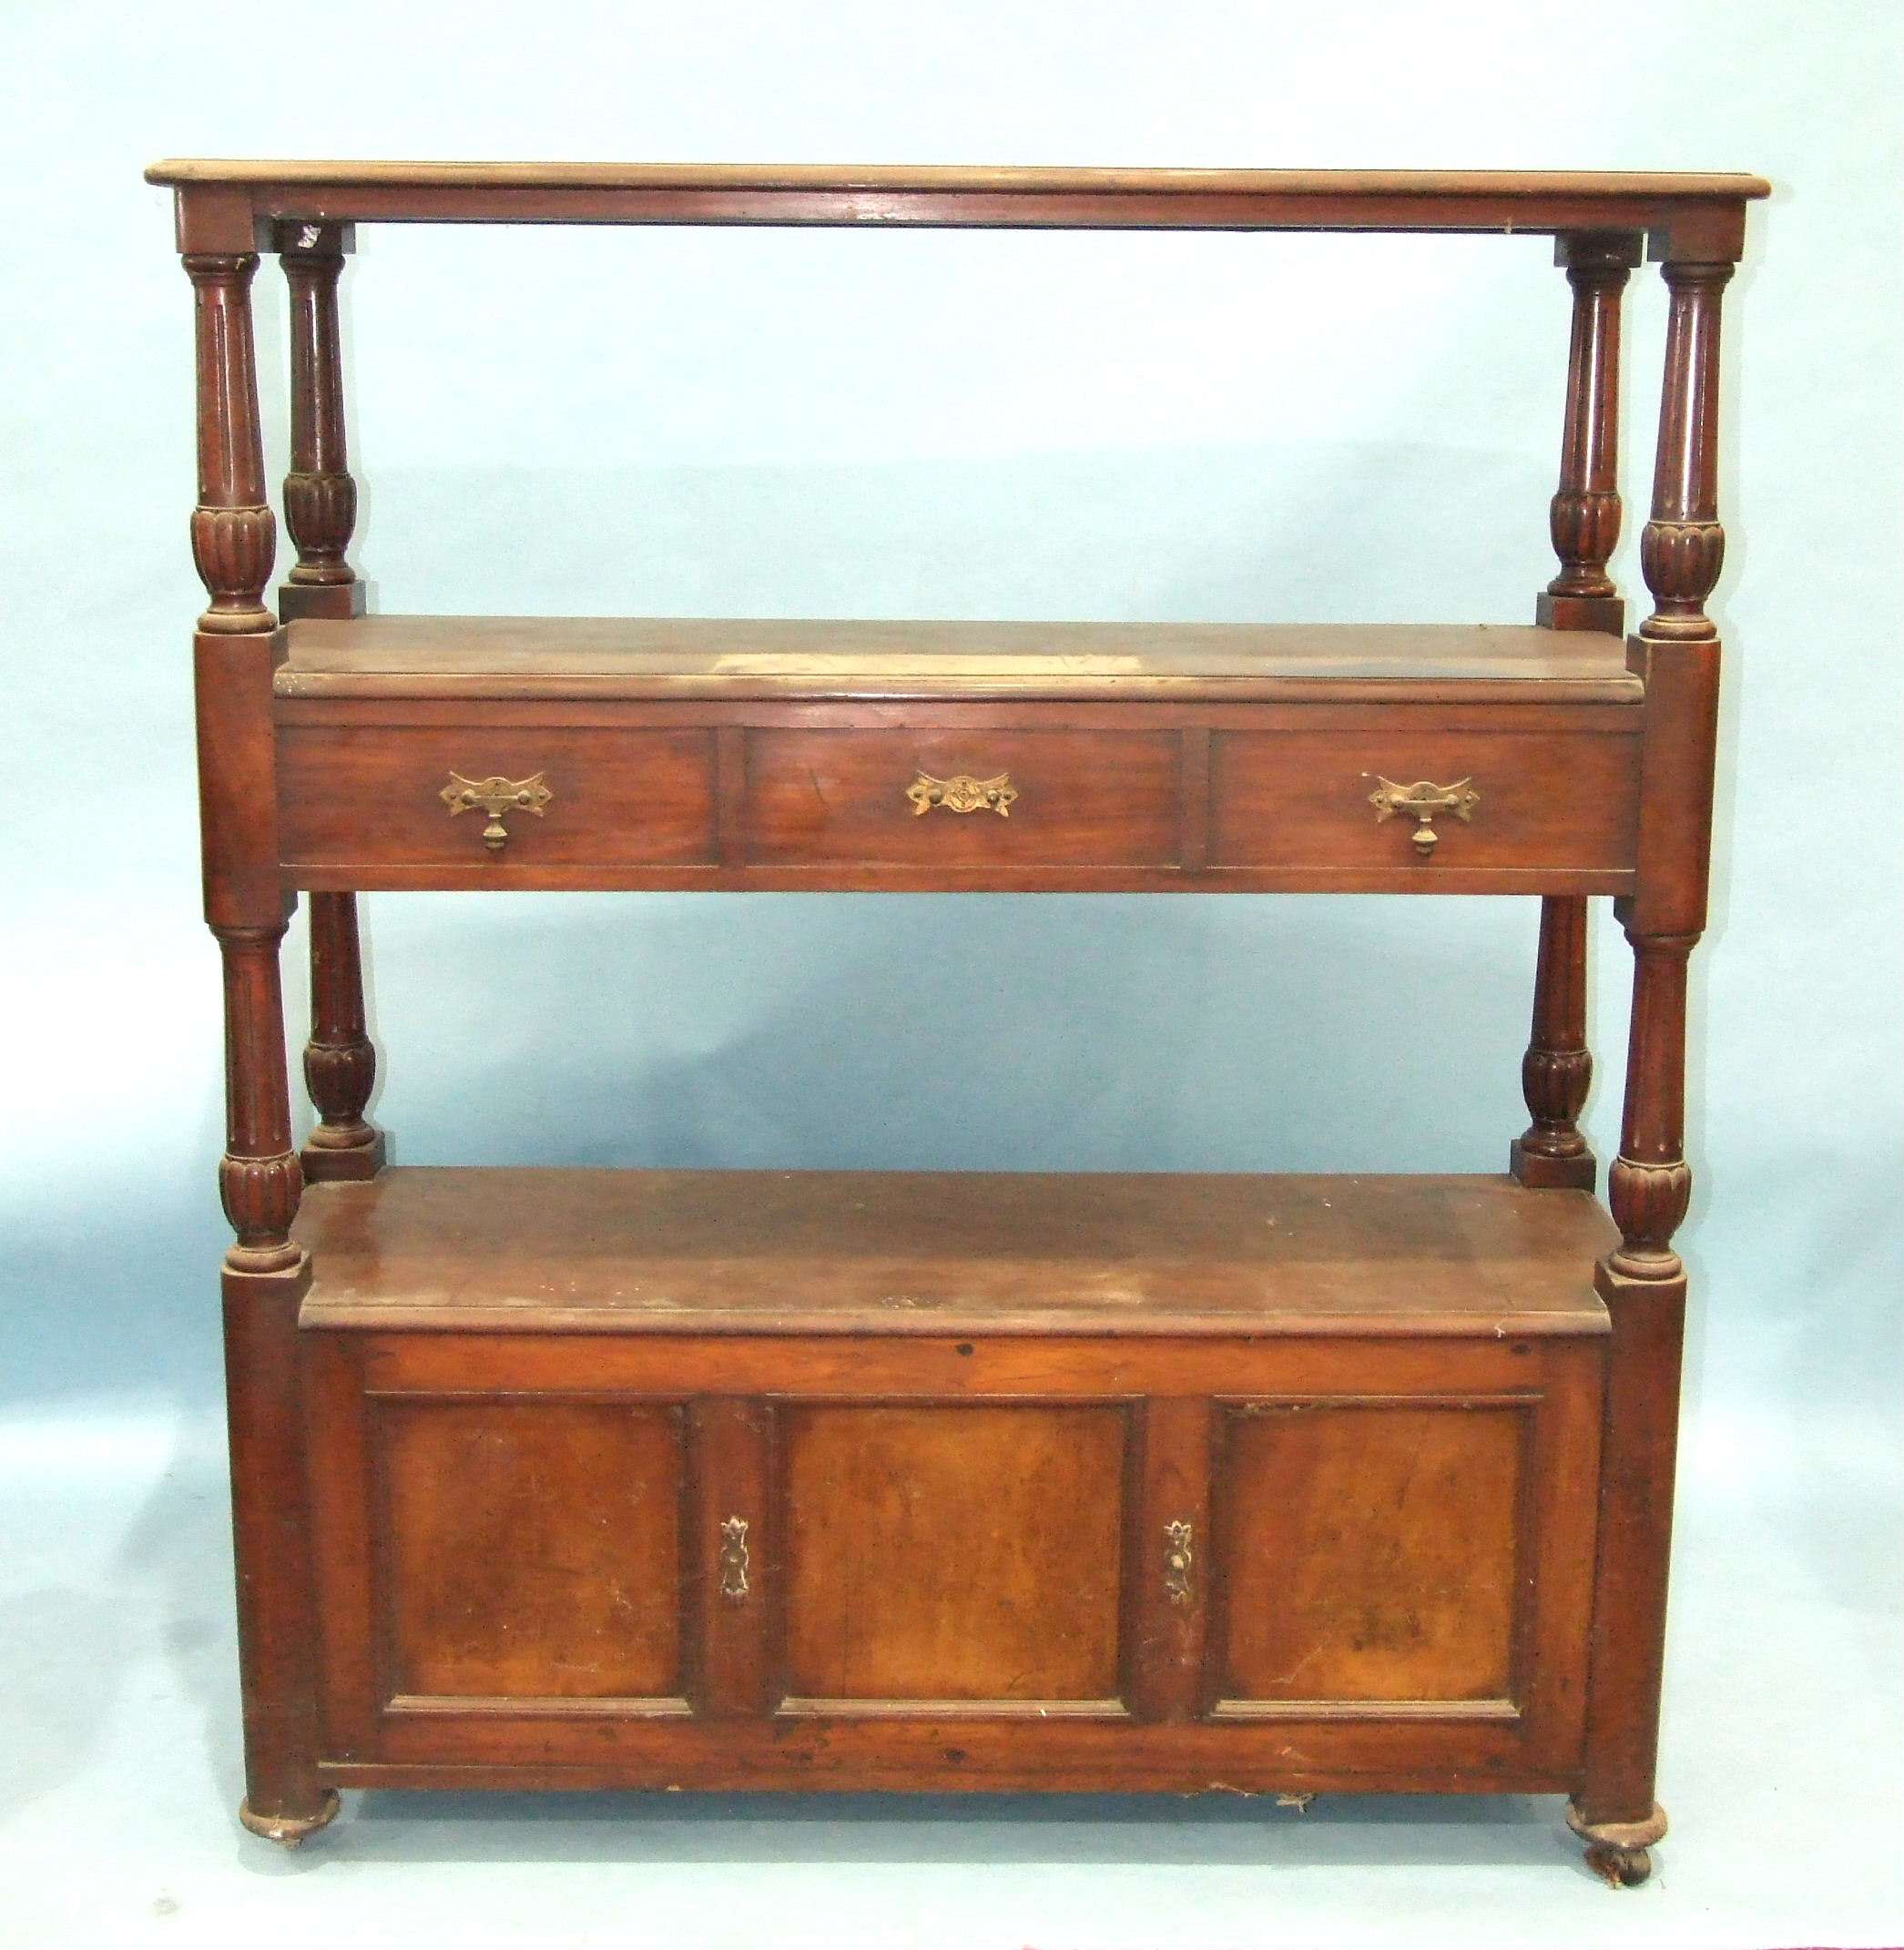 Lot 7 - A Victorian double-sided three-tier dumb waiter, having two centre drawers and three base